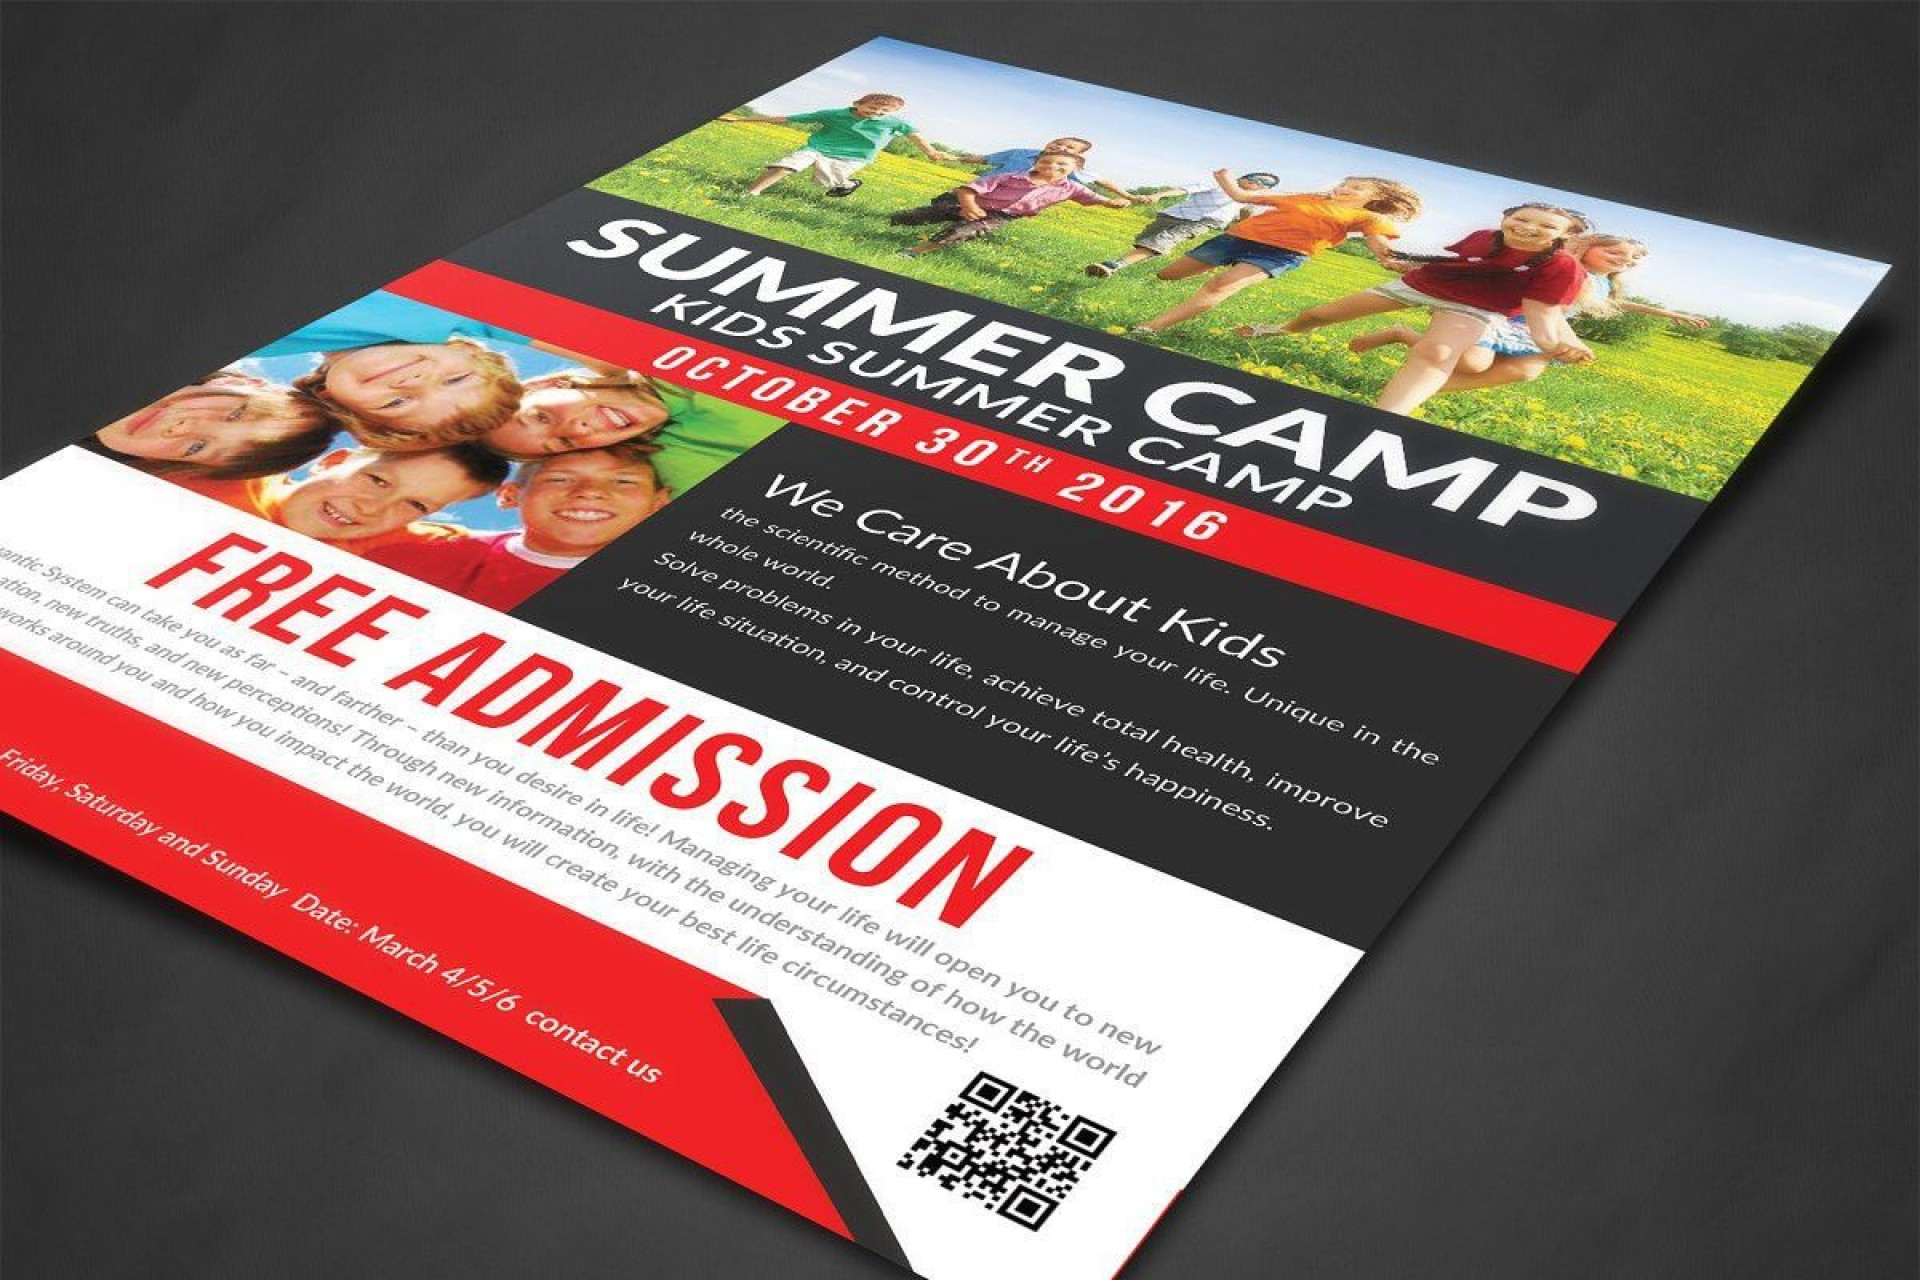 002 Unbelievable Free Sunday School Flyer Template Picture  Templates1920